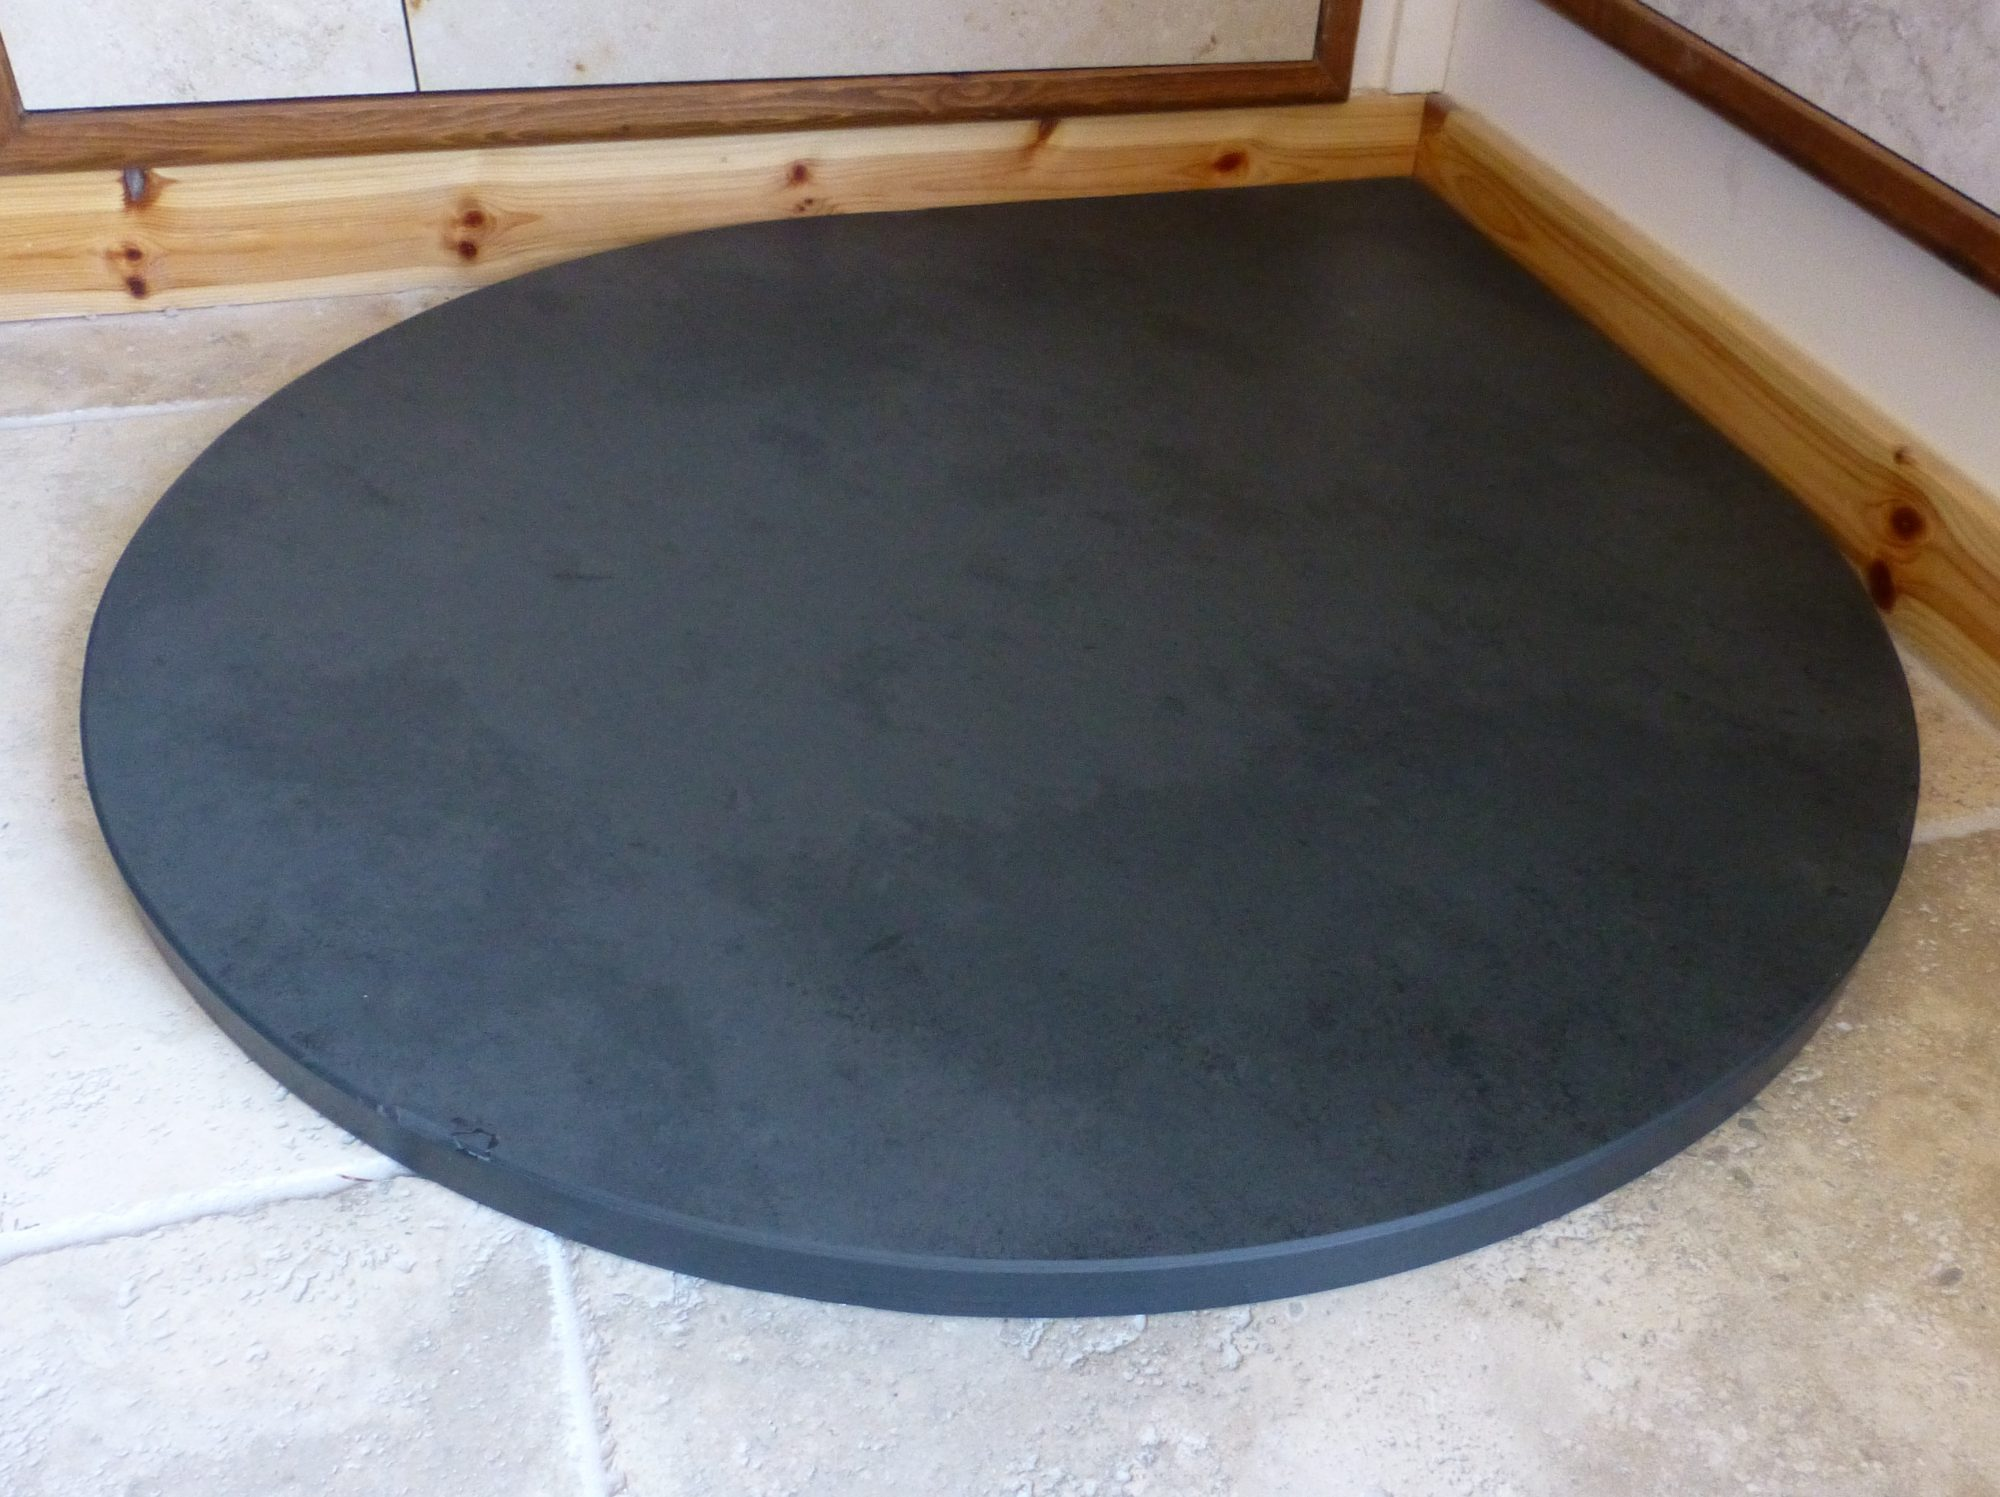 This is a Brazilian Grey/Black Slate Hearth cut by ourselves to a teardrop shape.Just an example of the cuts we can make to fit your needs.